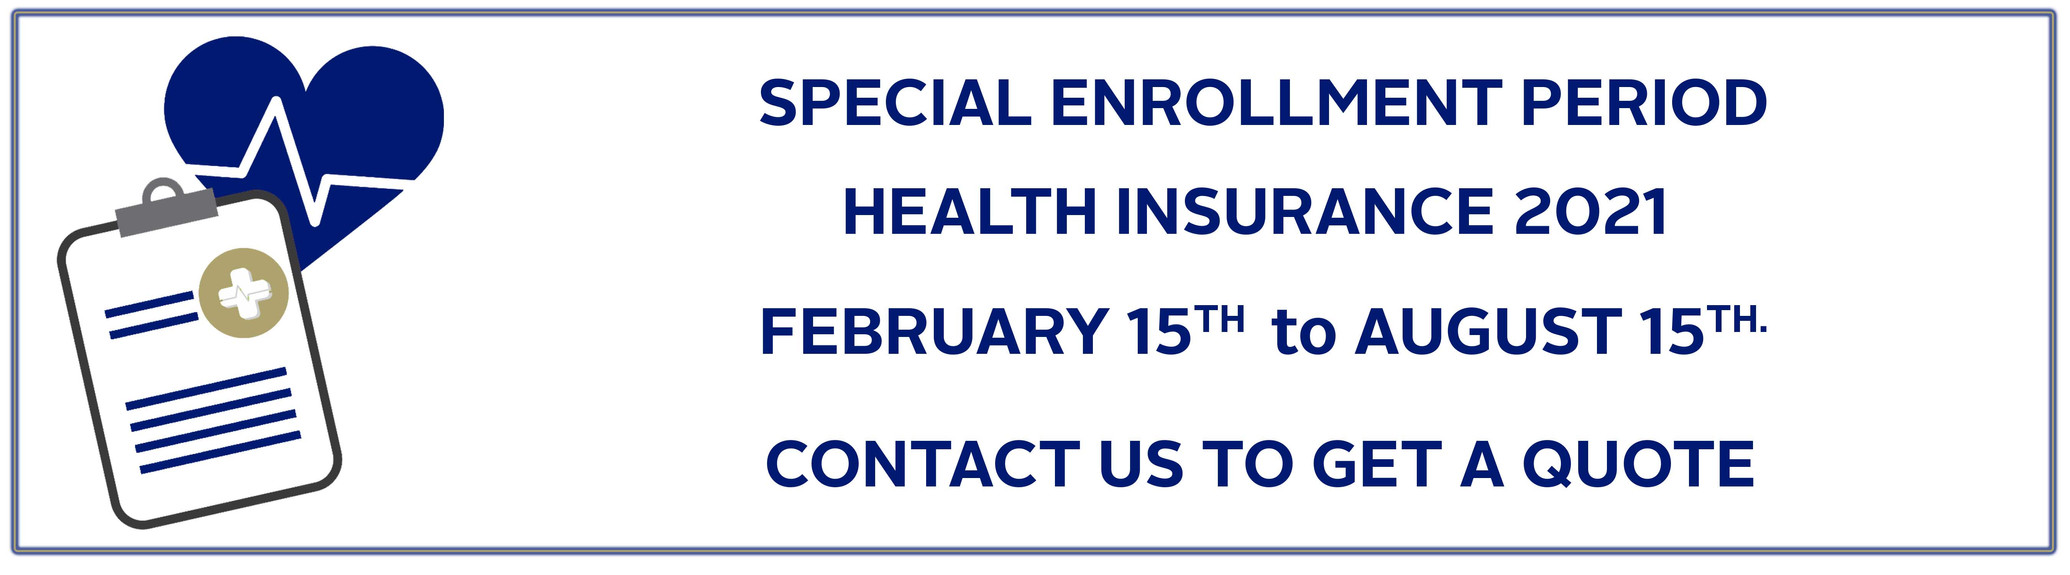 August 15th Special Open Enrollment Period